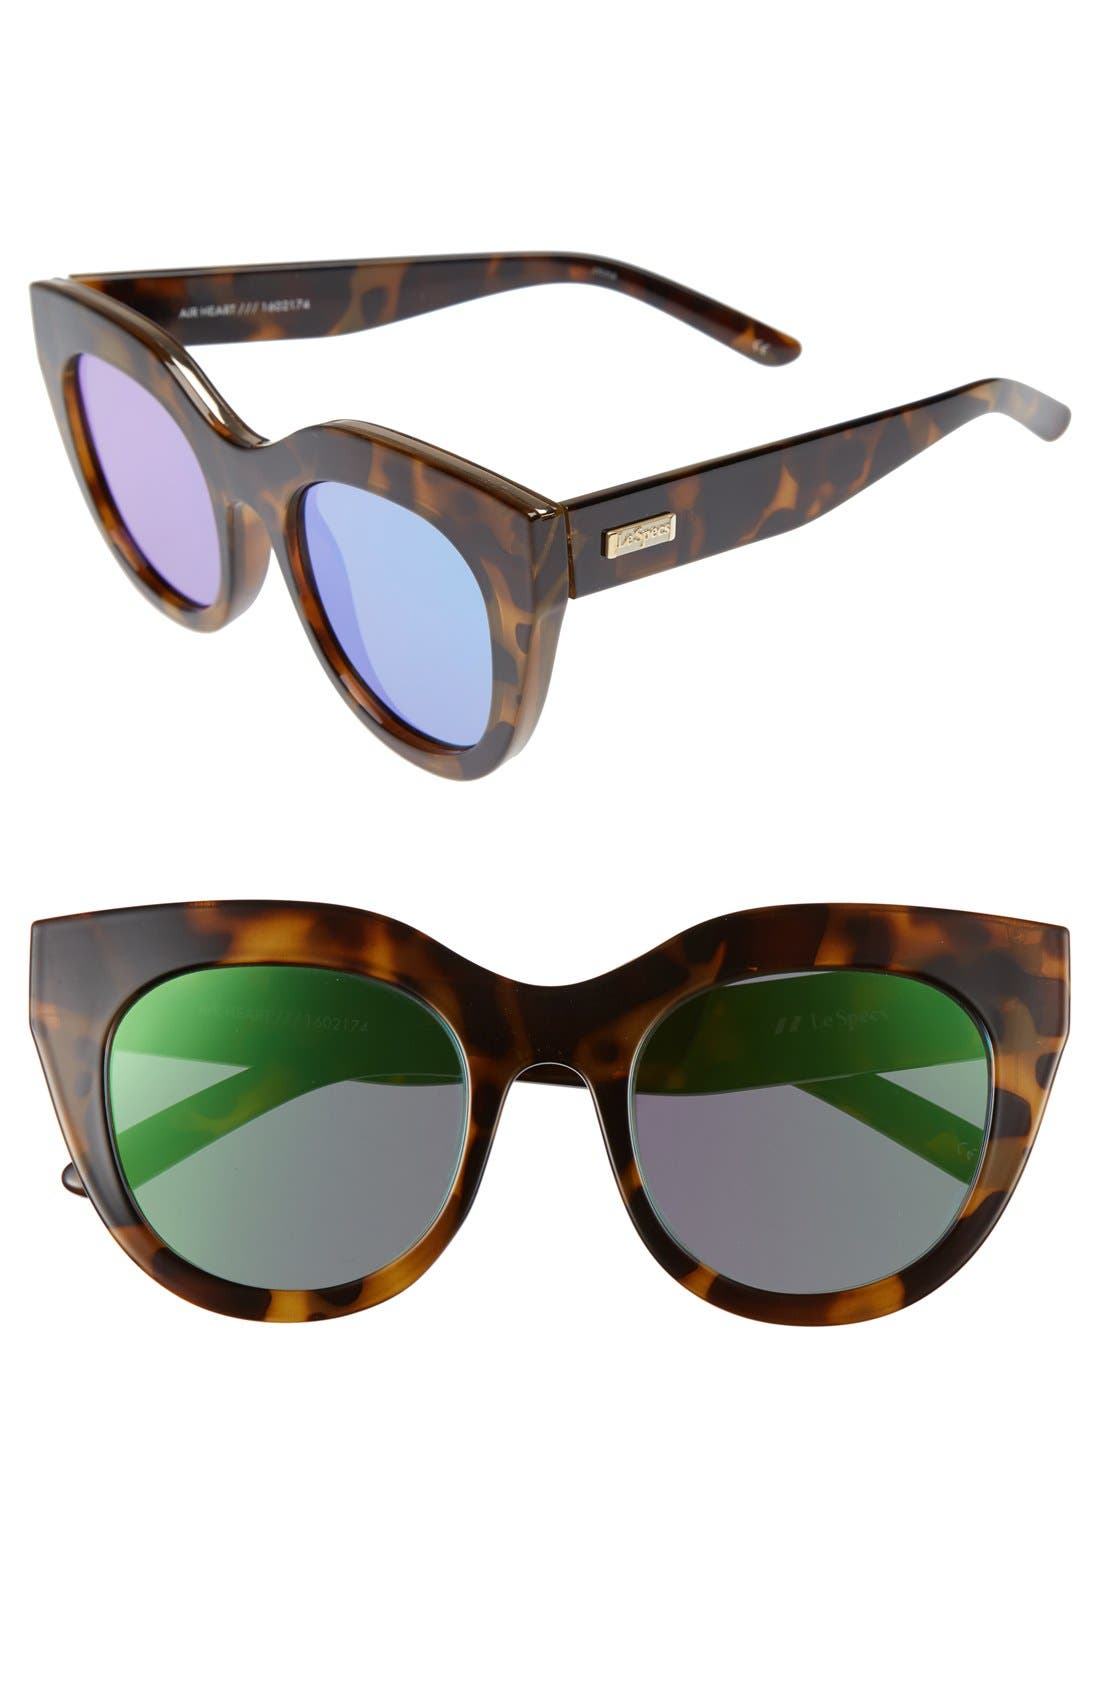 Main Image - Le Specs Air Heart 51mm Sunglasses